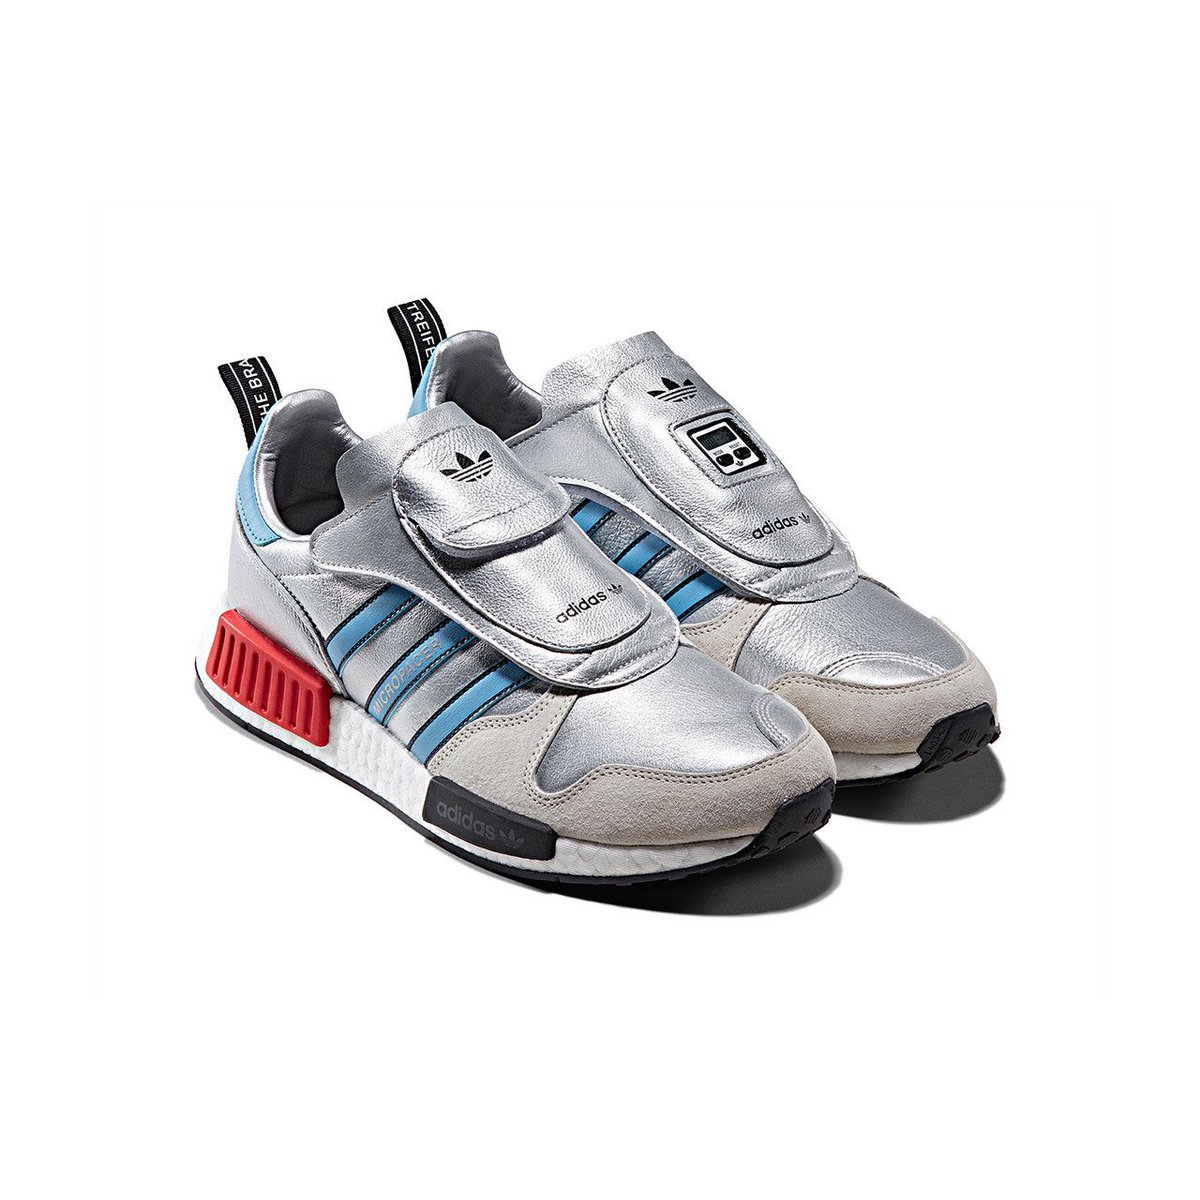 e6c4b1c1543700 adidas have reconstructing some of their classics with the  adidasoriginals  Never Made Pack - Releasing this month. What s your pick